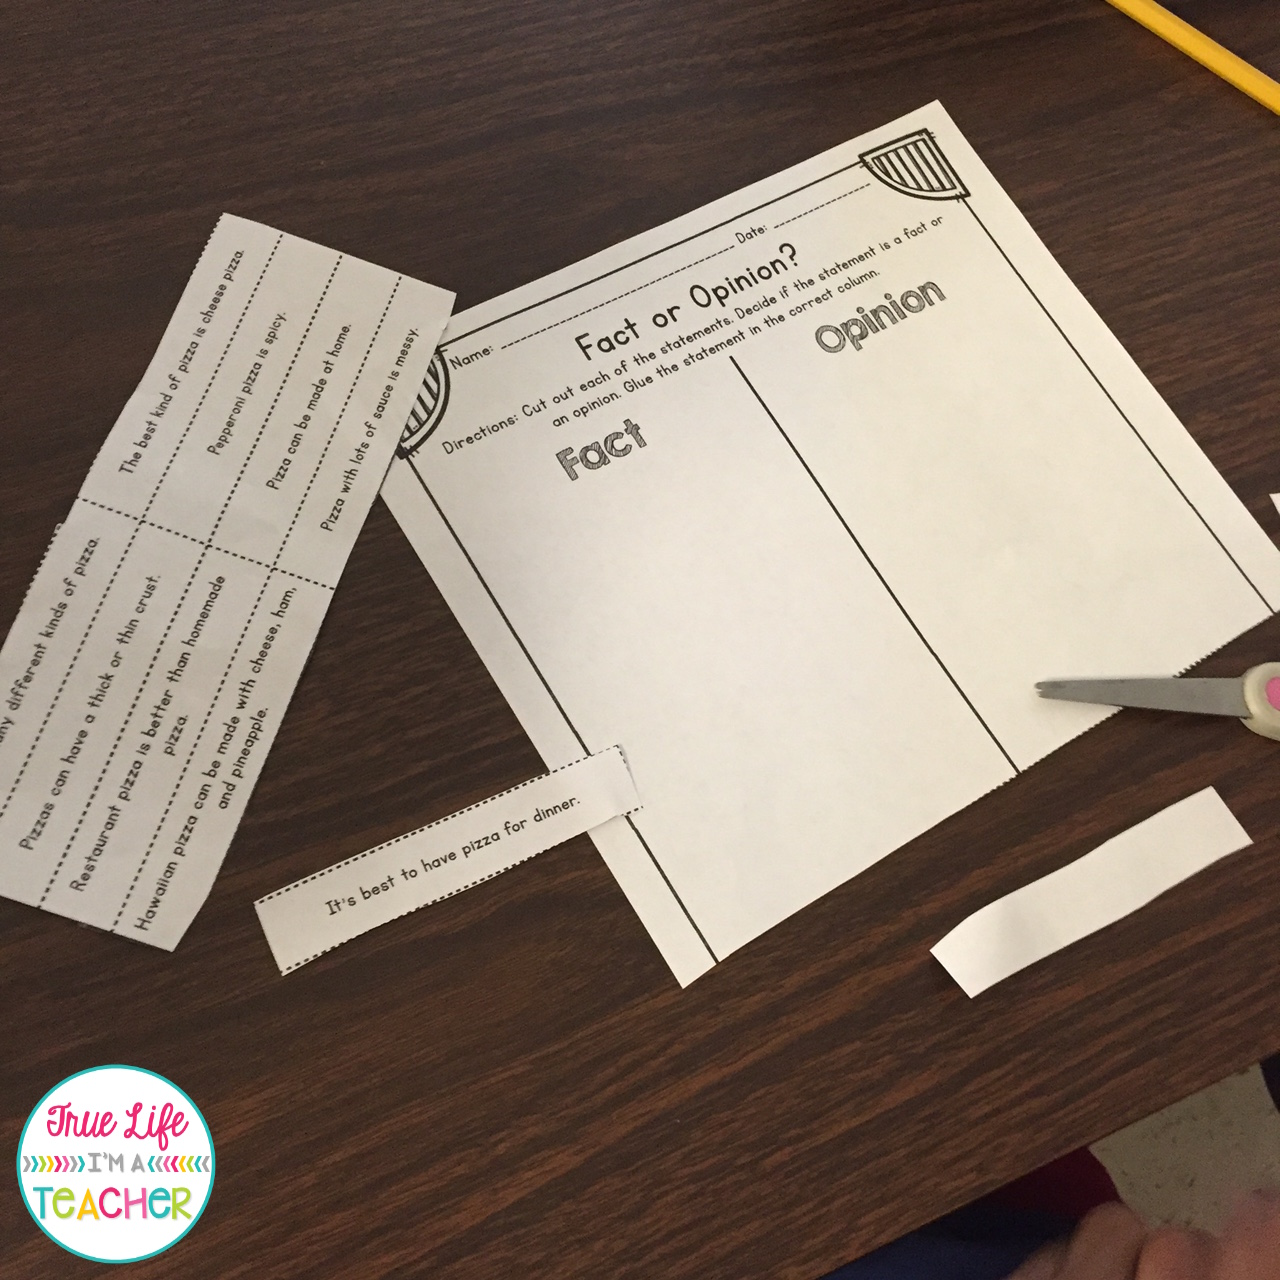 How To Kick Off Your Opinion Writing Unit